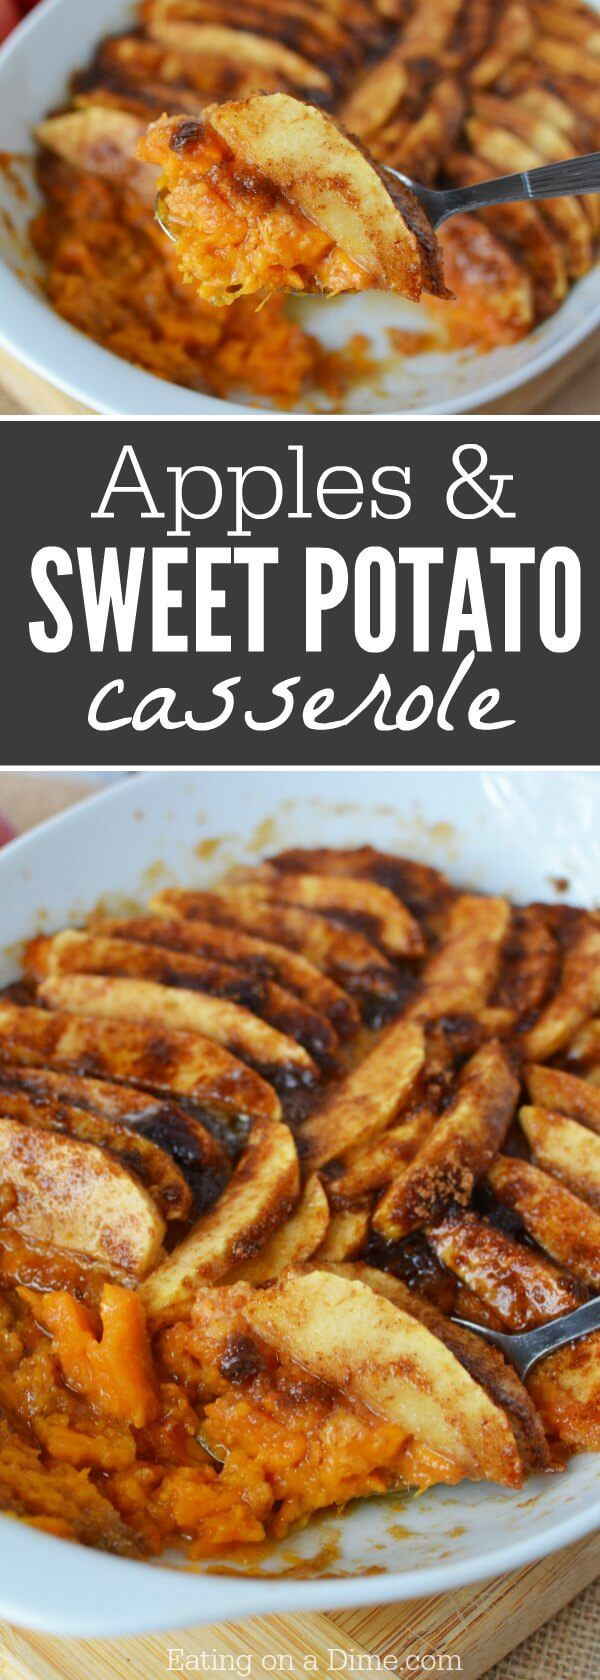 Try this Easy Sweet Potato Casserole Recipe with Apple. It is the perfect side dish! You will love this Easy Sweet Potato Casserole Recipe!